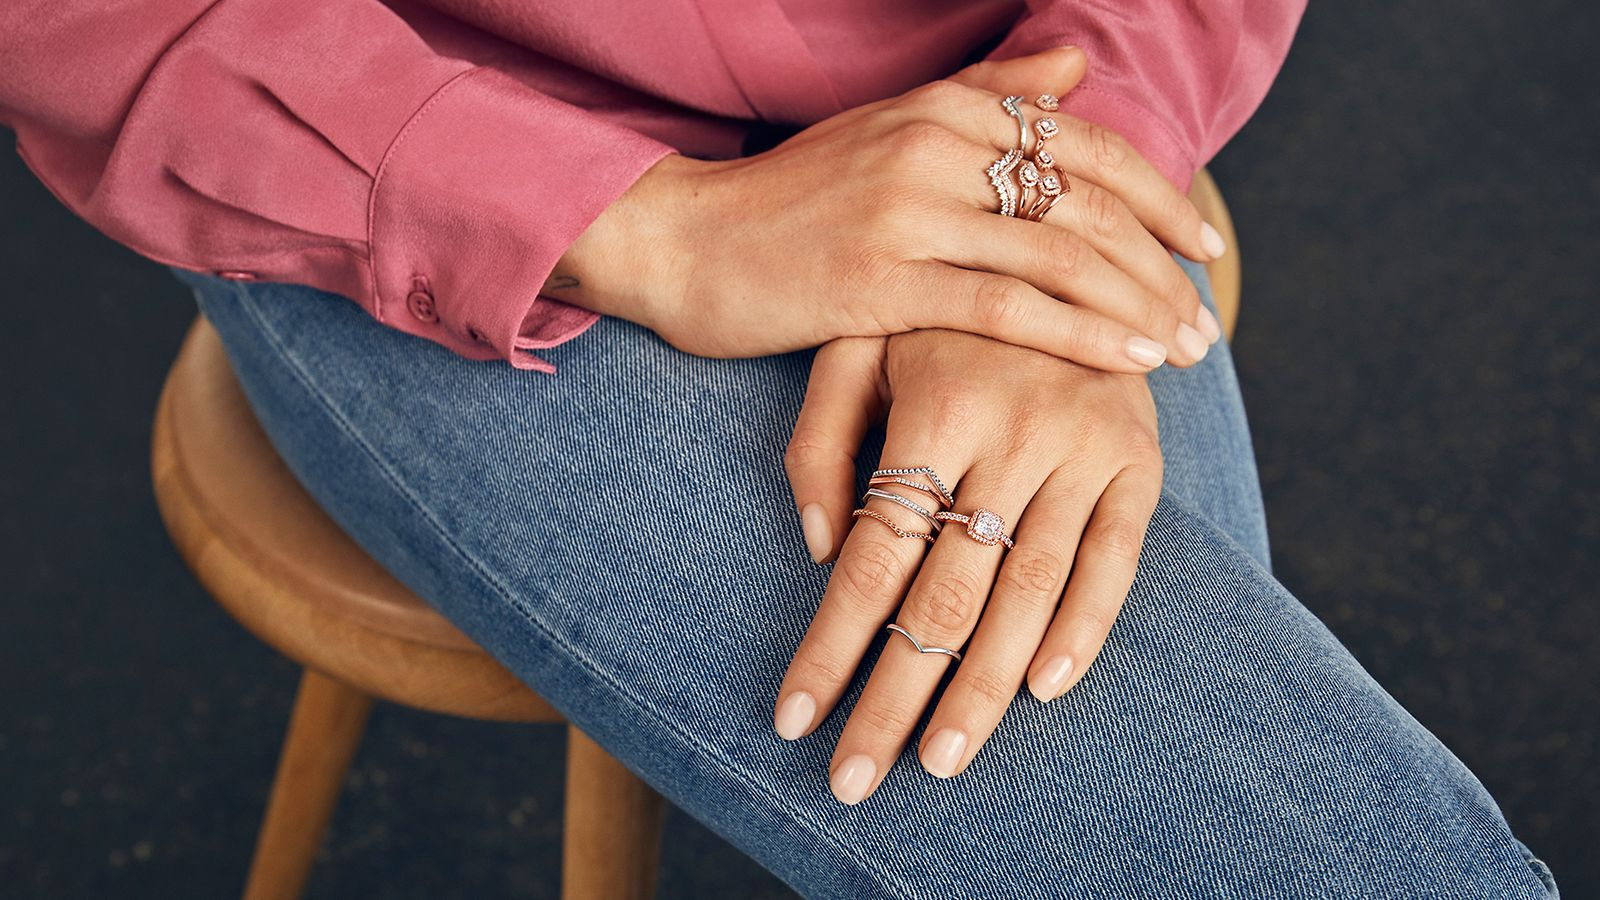 Pandora's Latest Collection Timeless May Be New, But it's Ageless